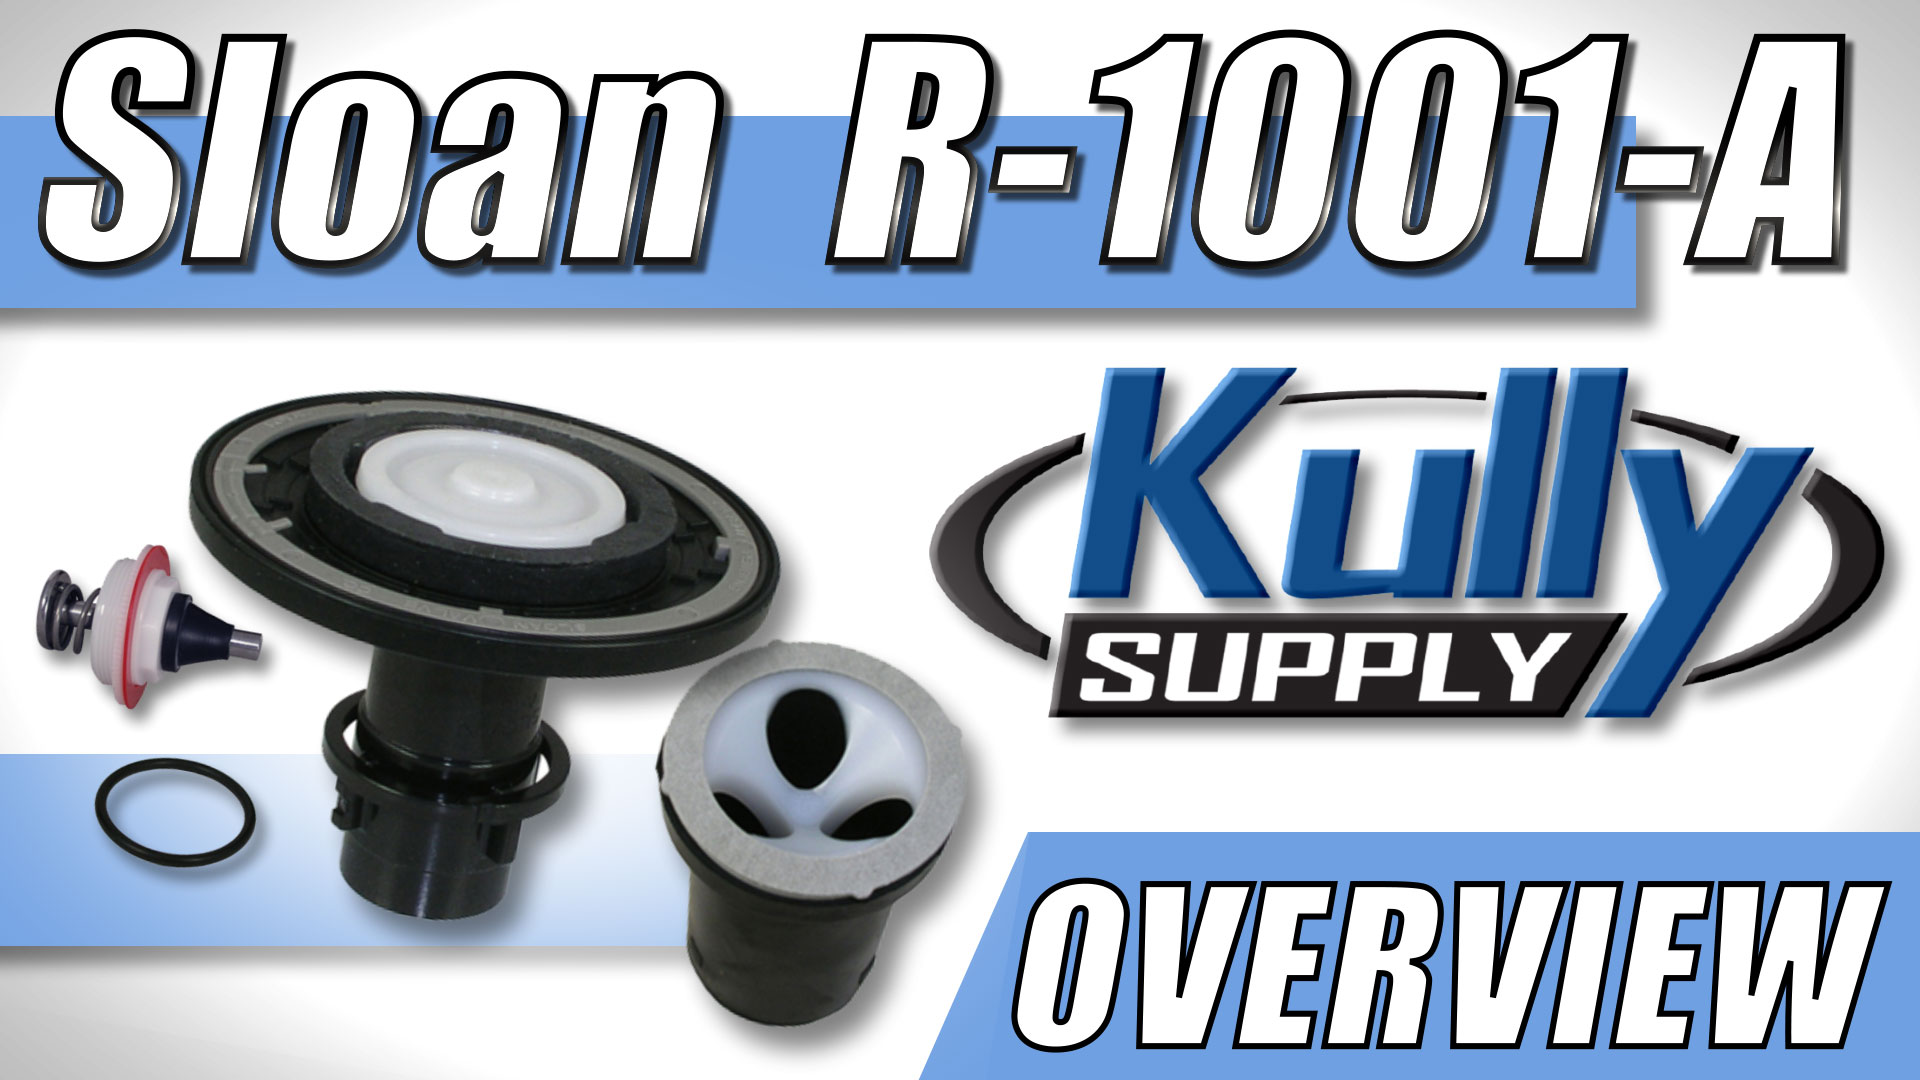 Overview Video: Sloan (R-1001-A) Regal Toilet Rebuild Kit 4.5 GPF